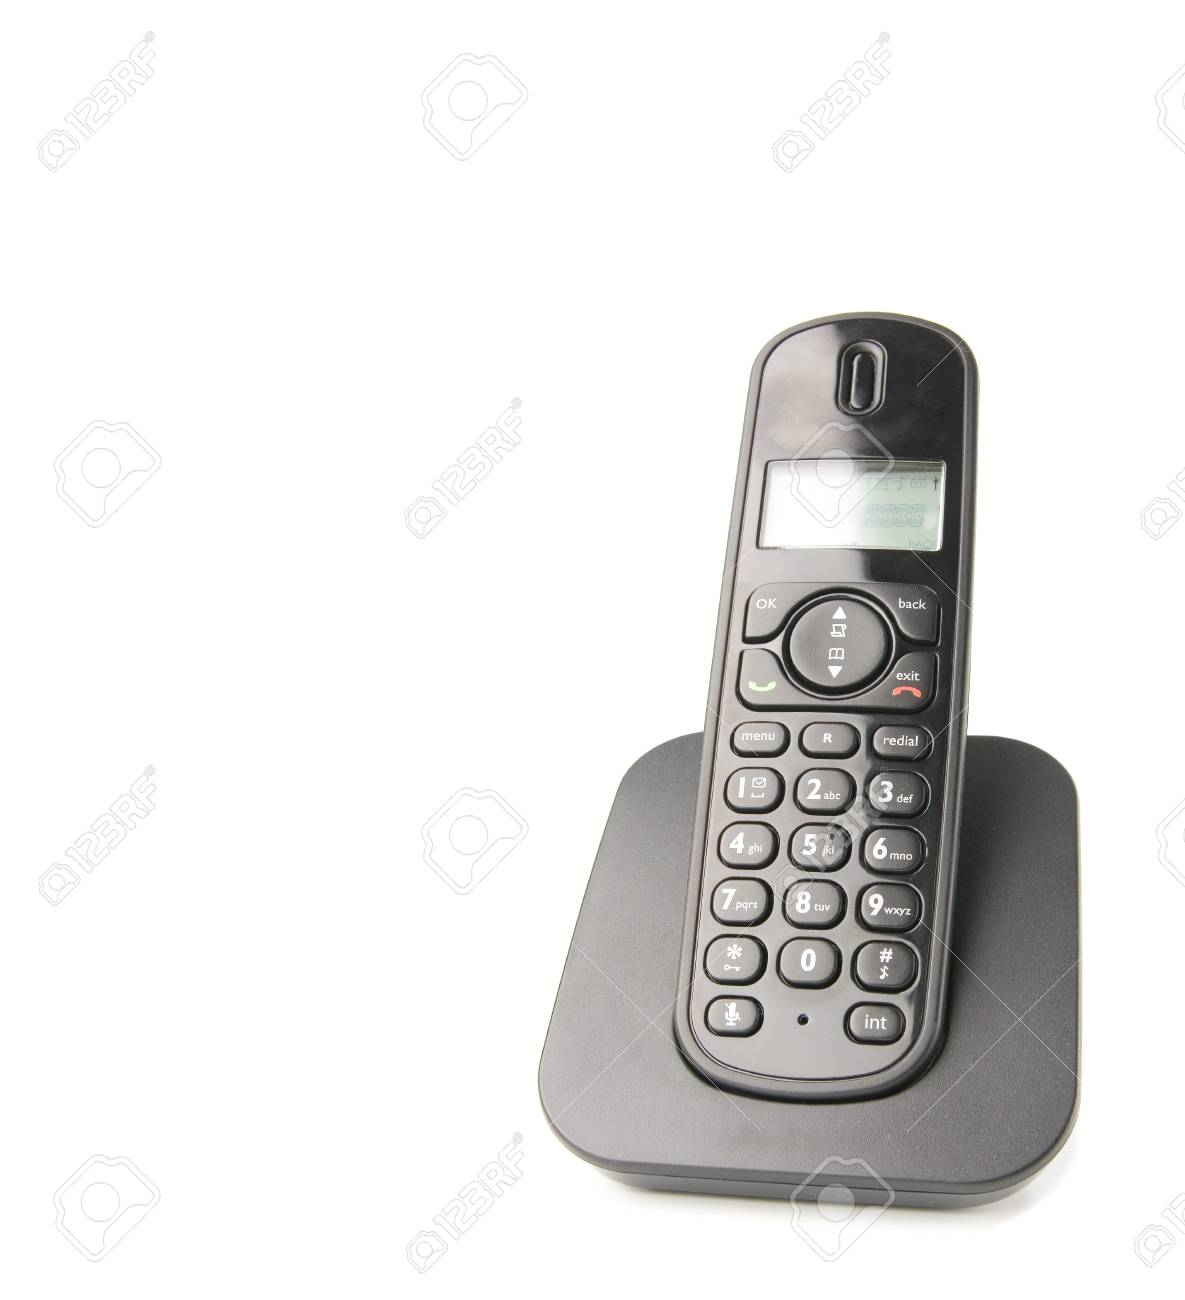 dect cordless phone isolated on withe background Stock Photo - 4006674